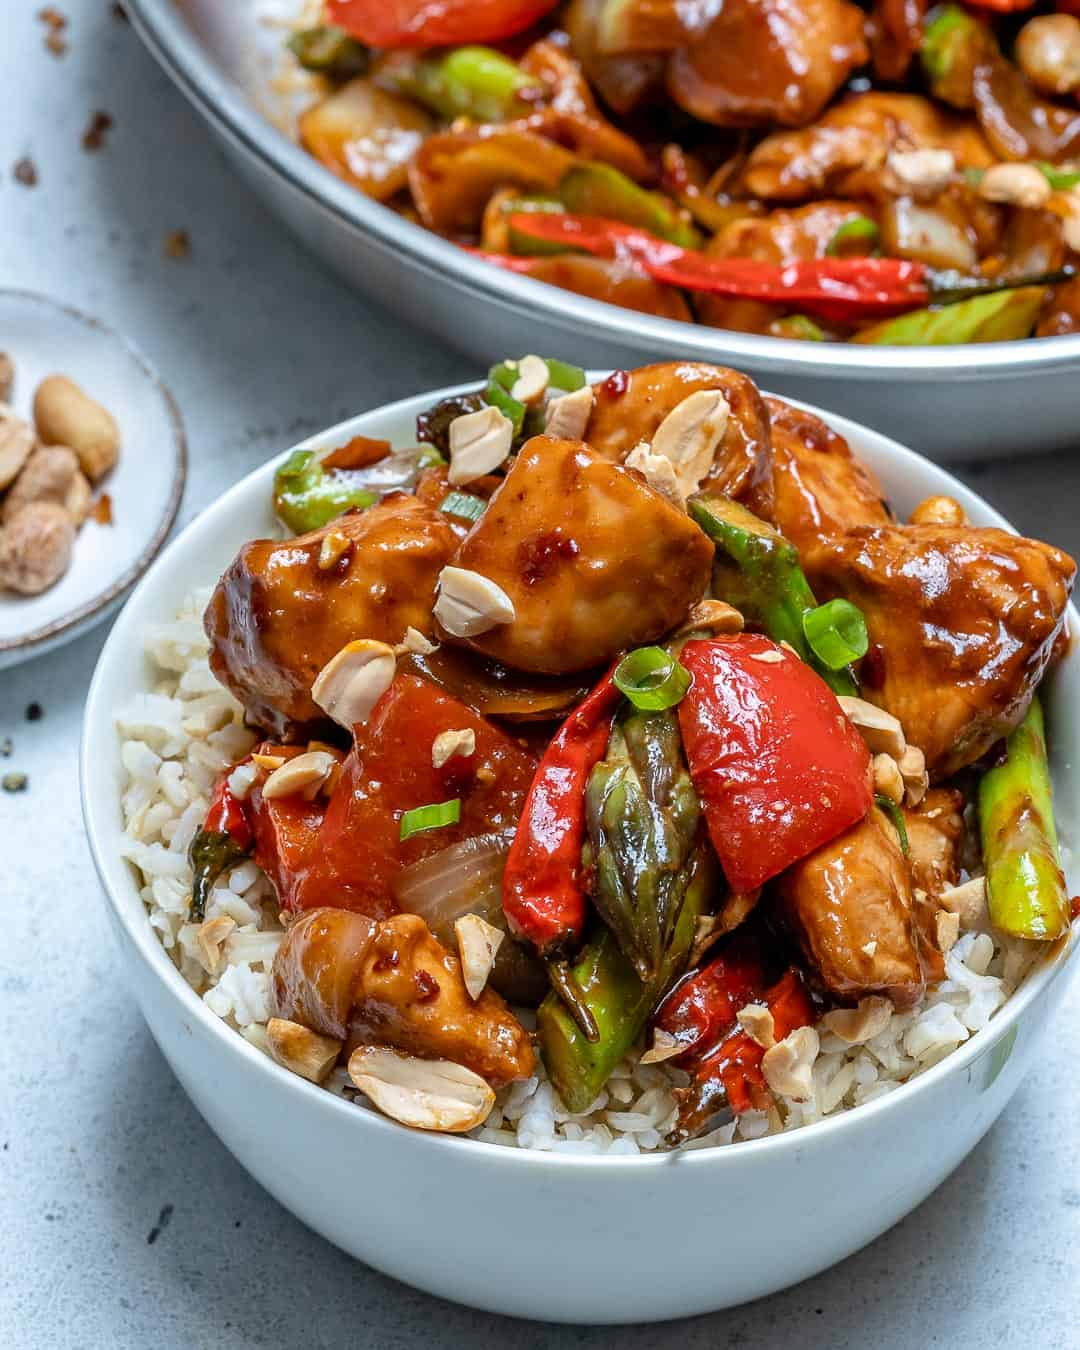 kung pao recipe thats so easy to make